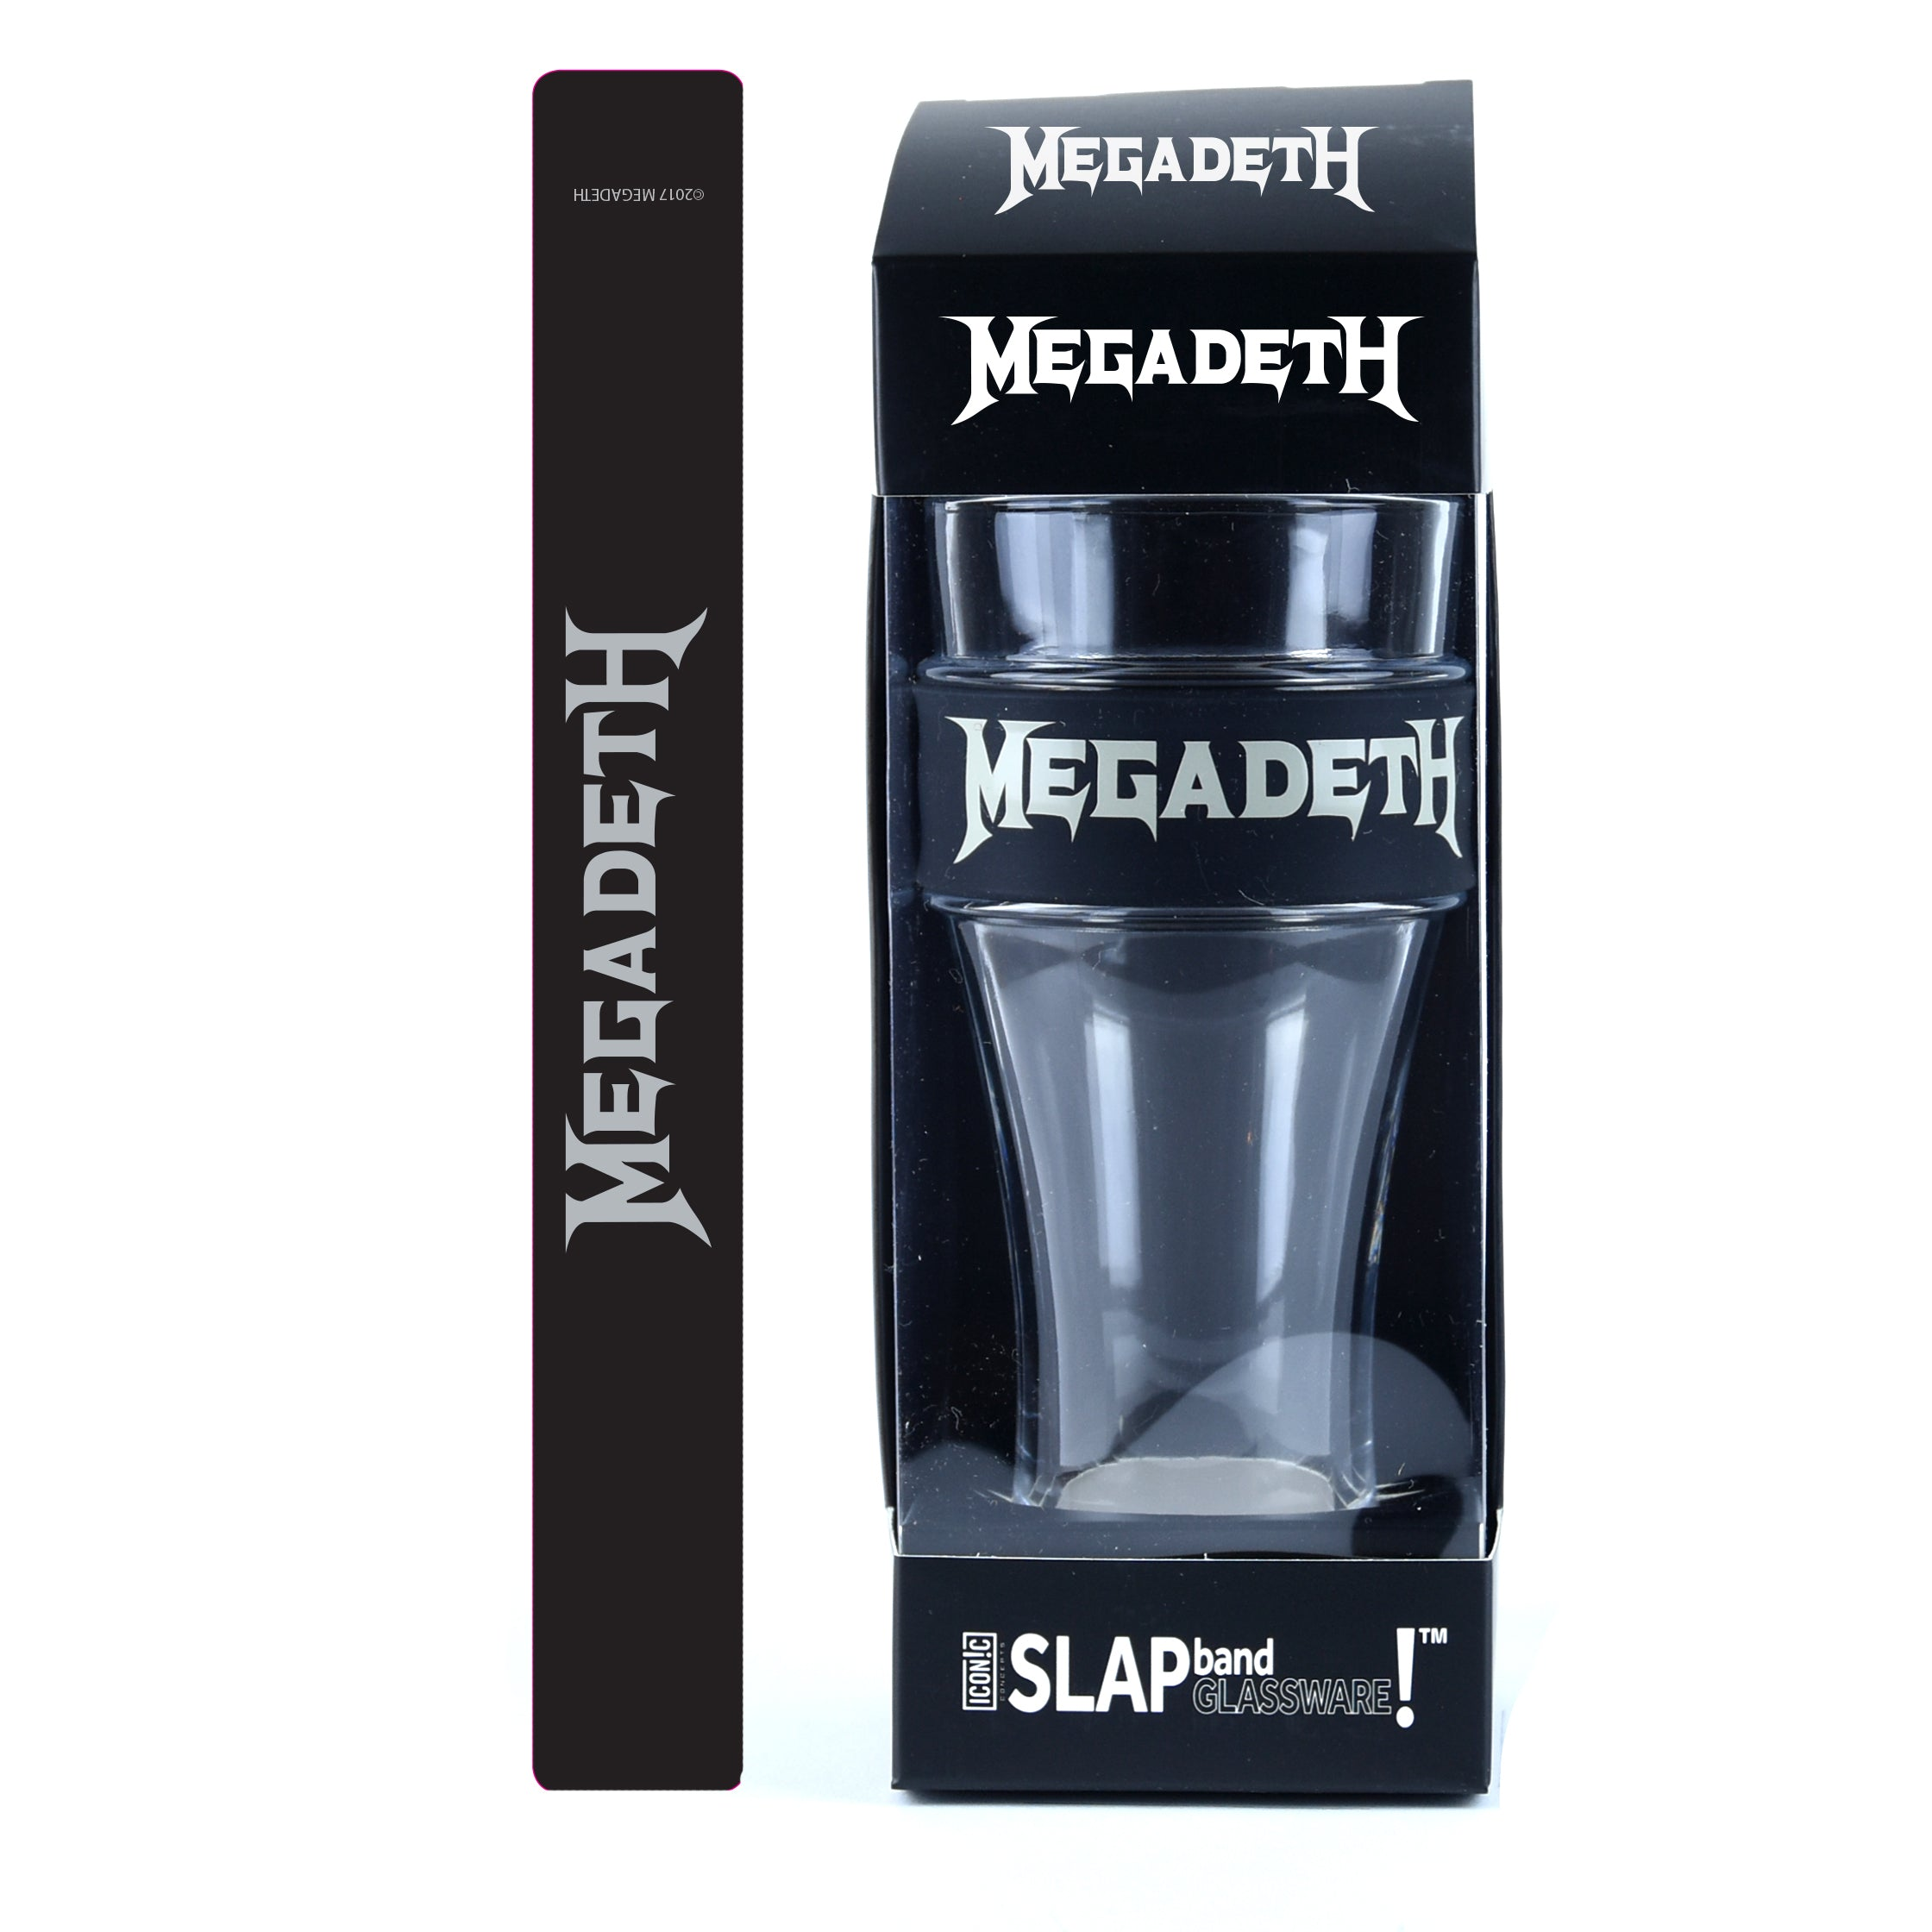 Megadeth Single Pack Slap Band Glassware includes Silicone Wrapped Slap Band Black w/Silver Logo